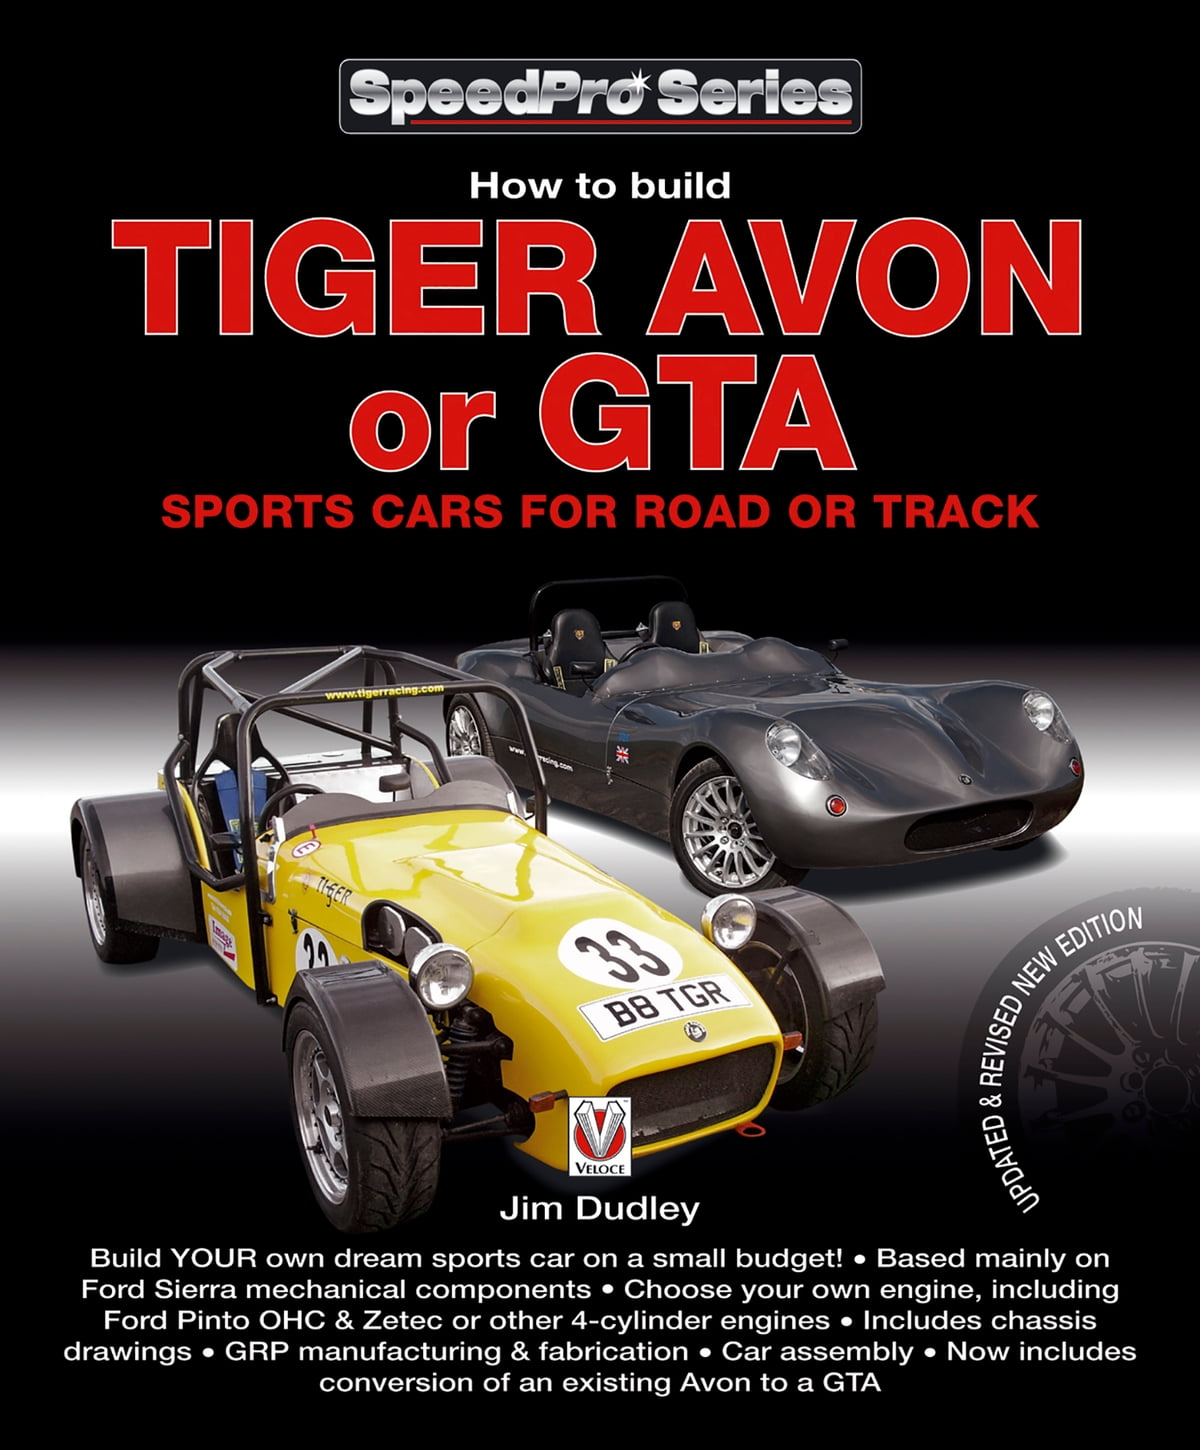 How To Build Tiger Avon Or GTA Sports Cars For Road Or Track EBook By Jim  Dudley   9781845845797 | Rakuten Kobo